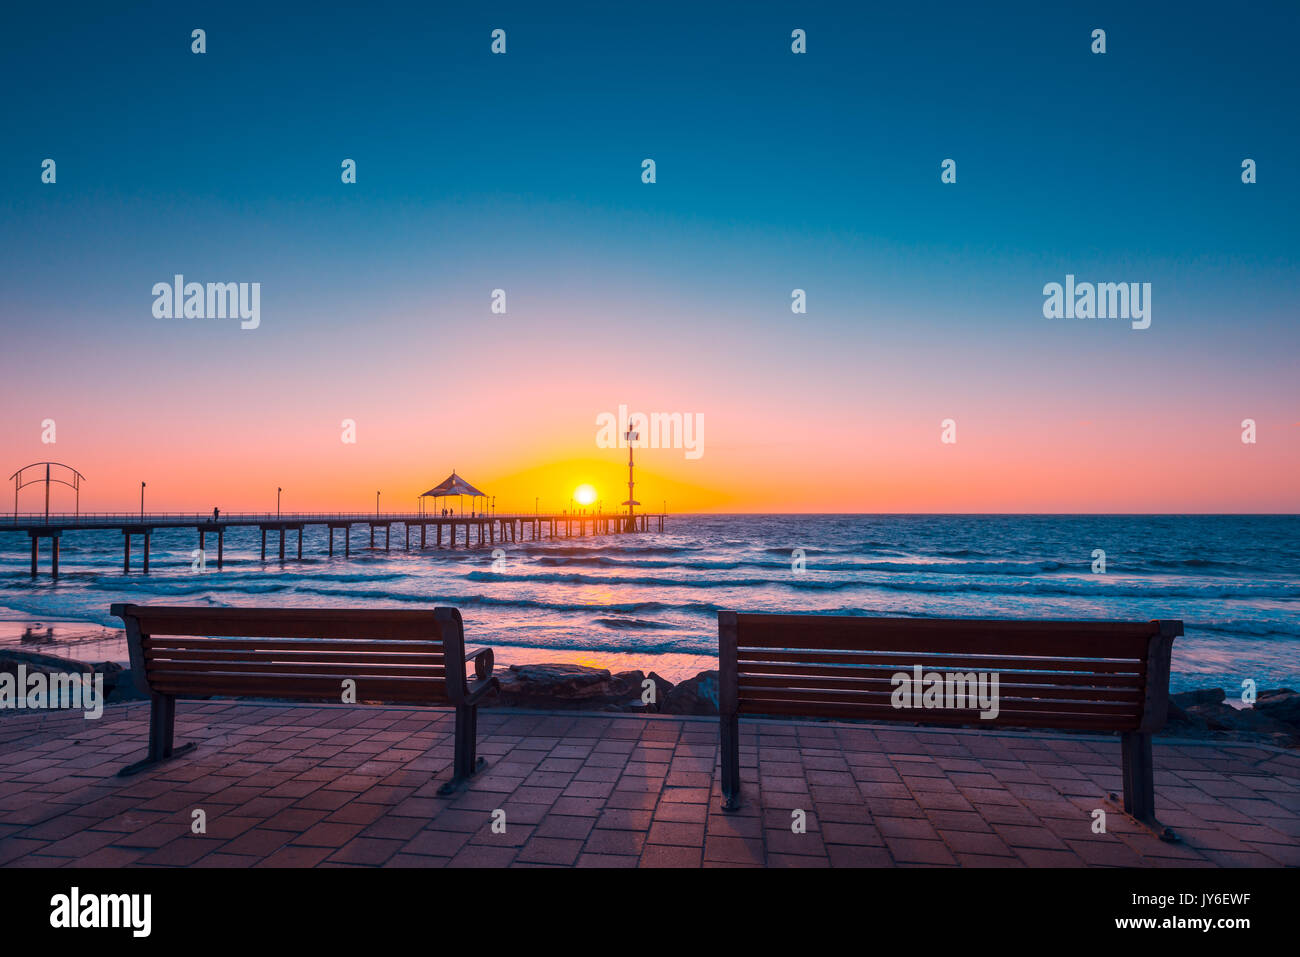 Brighton Beach view with people walking along jetty at sunset, South Australia - Stock Image